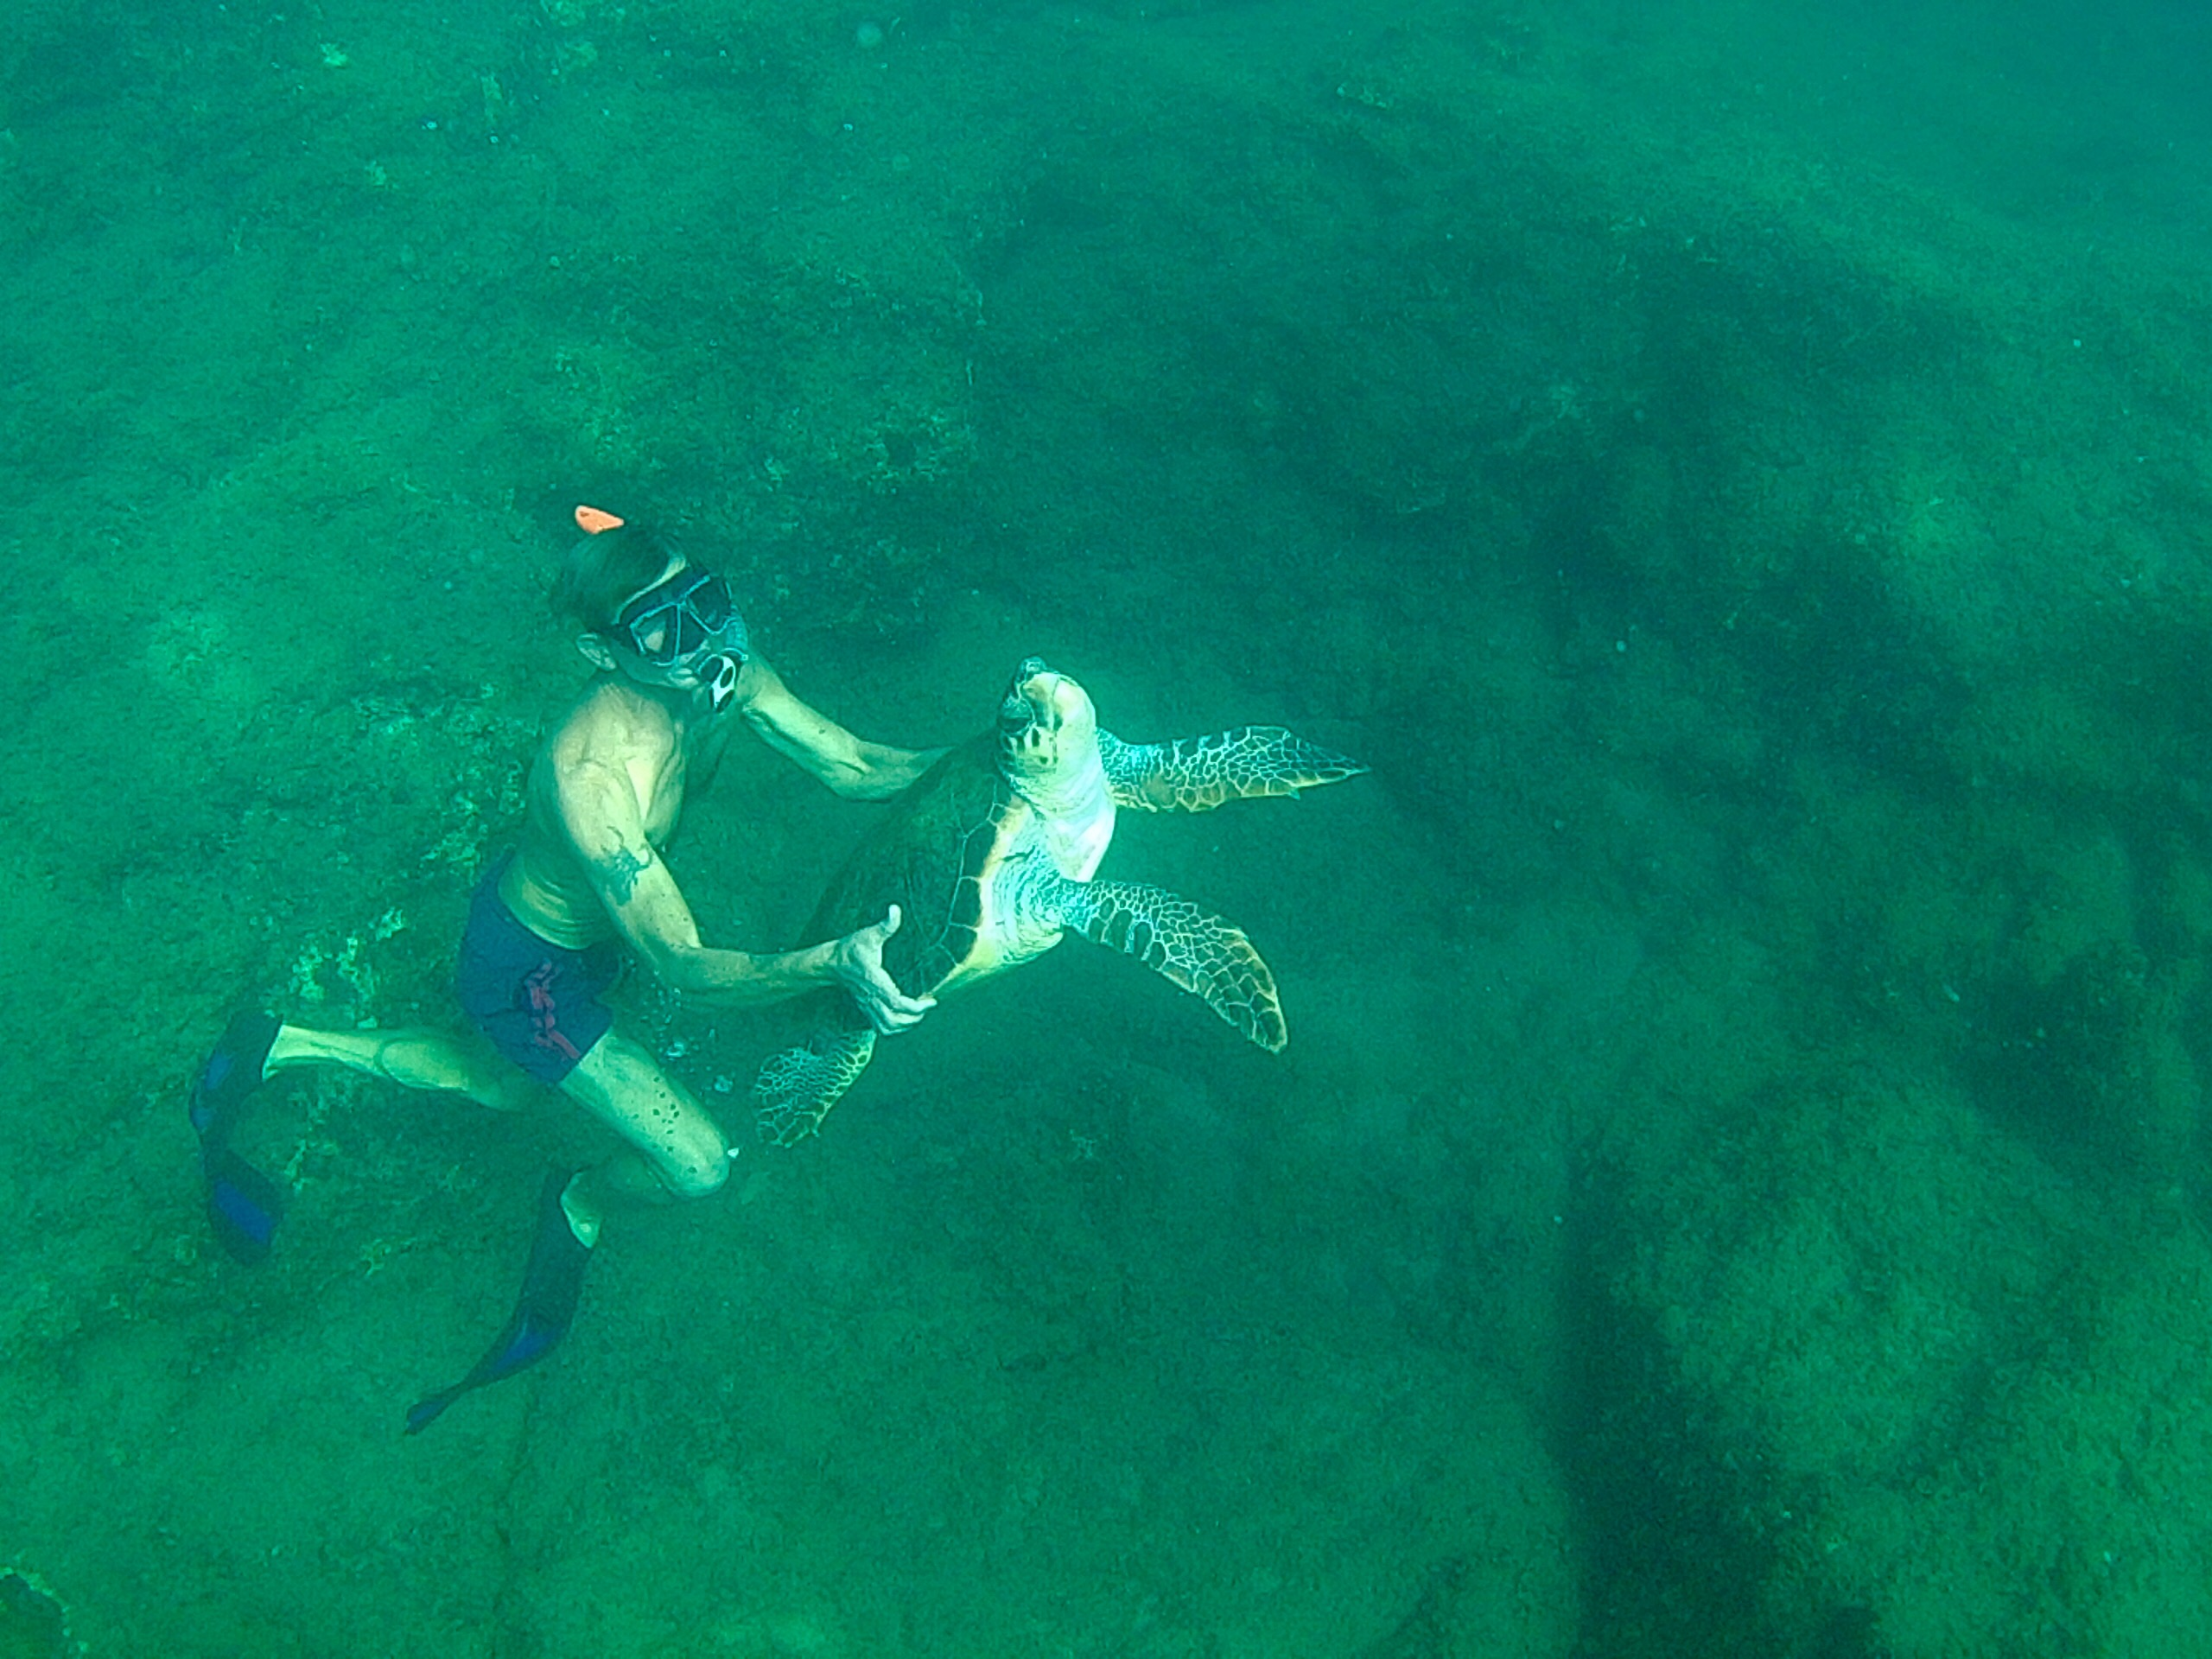 Man Snorkeling with Sea Turtle